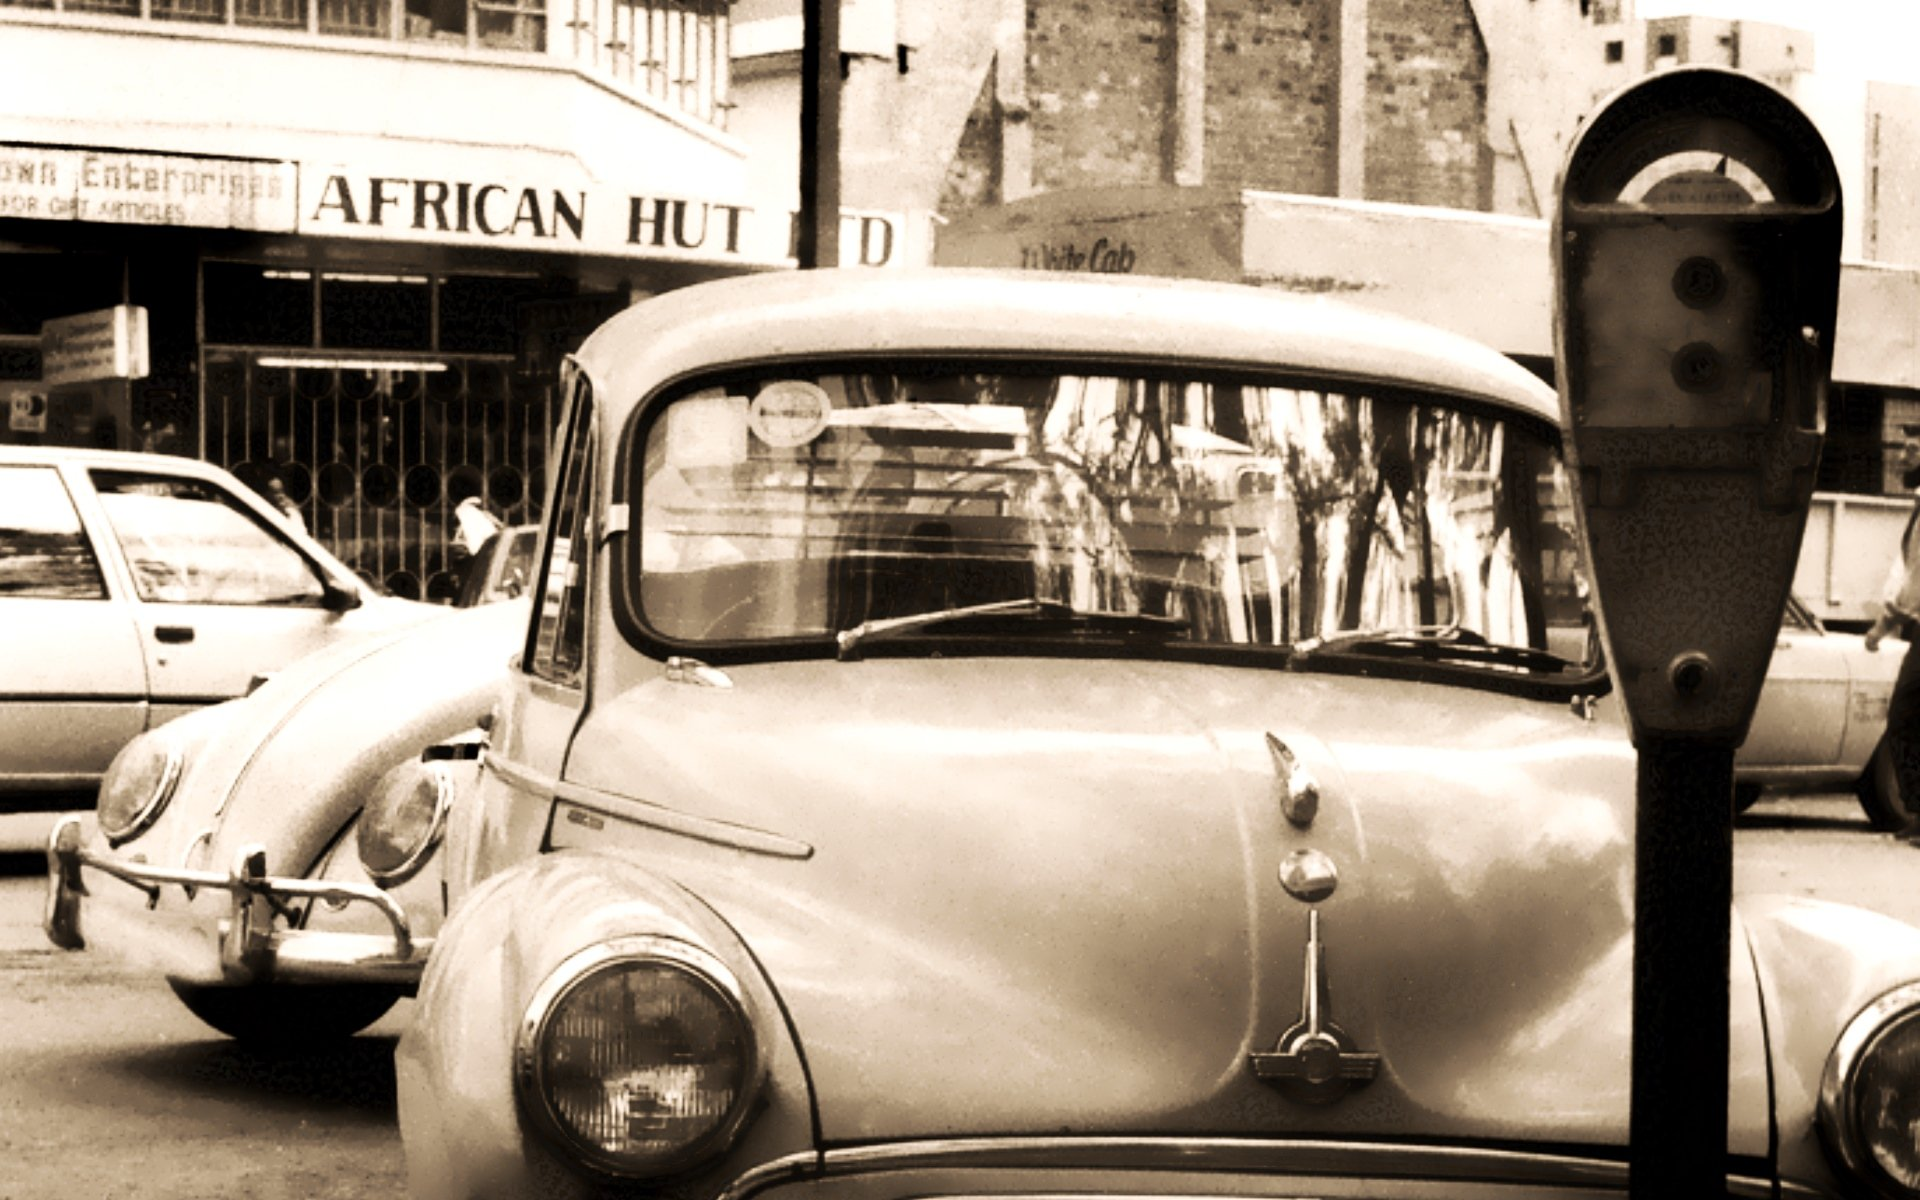 Parking metres were a common feature in the city of Nairobi in a past not too old. Now not one is left. There are plans to reintroduce them again as parking becomes a huge county challenge. Photo courtesy of David Blumenkrantz.